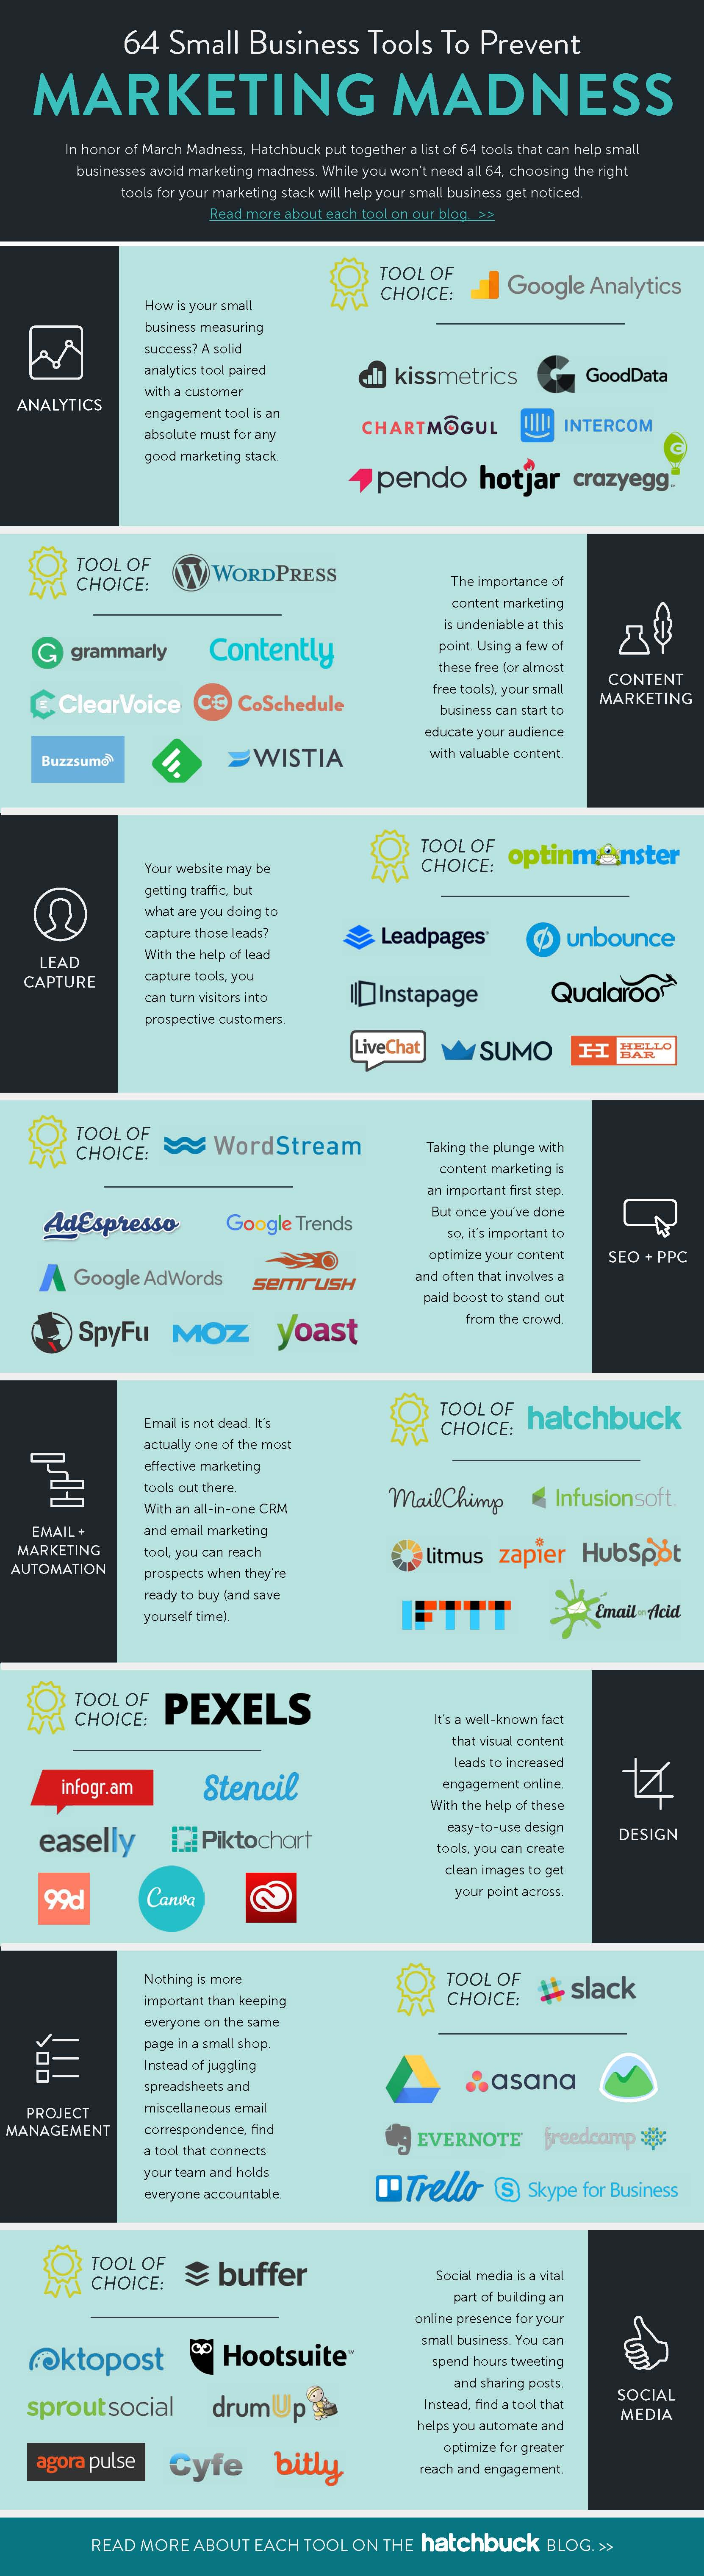 Small business marketing tools infographic